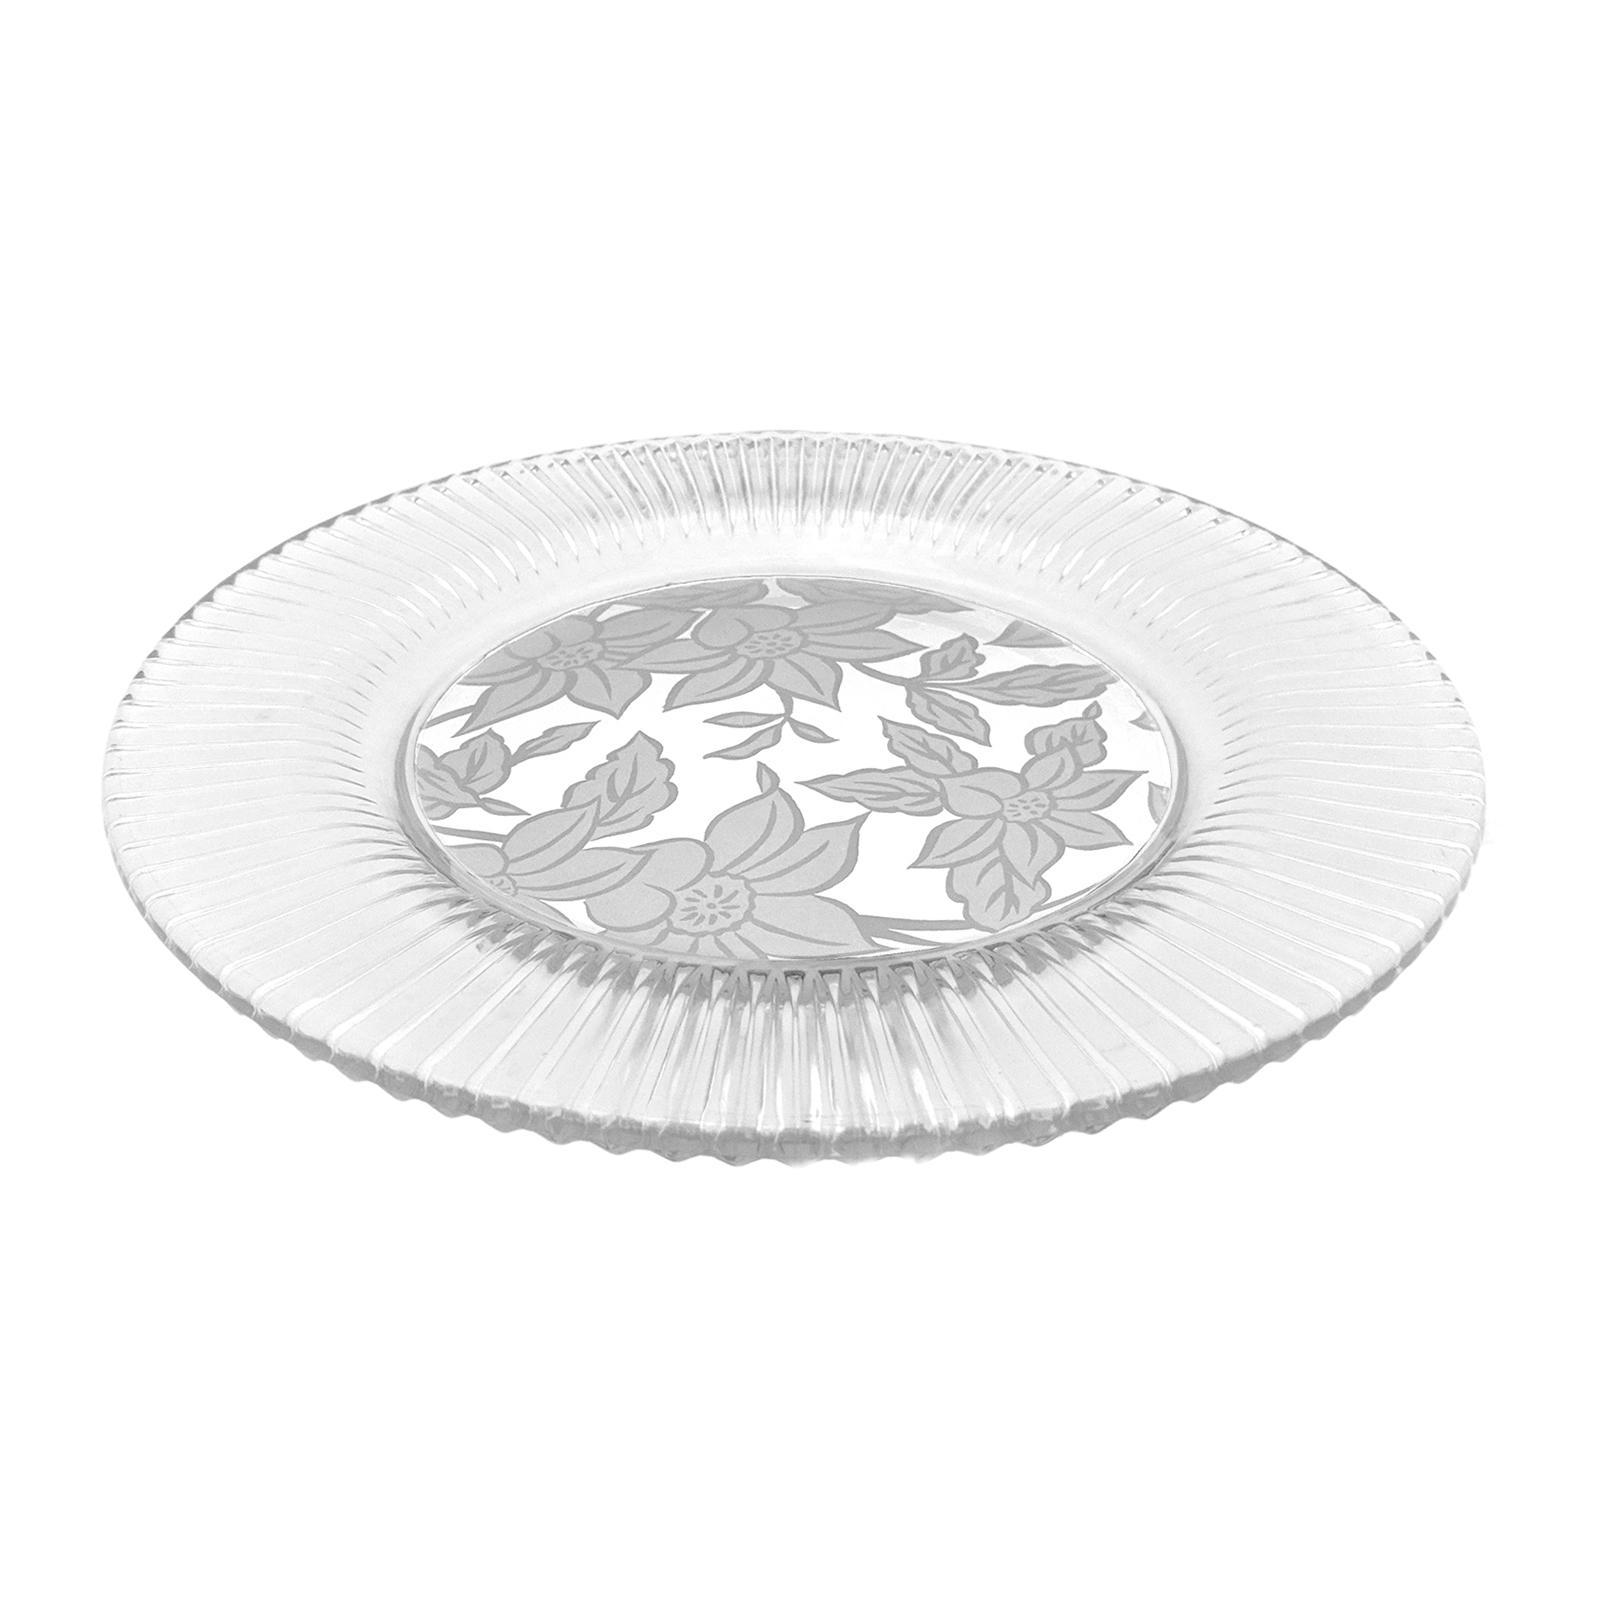 Soga Diamond Fire Eden Glass Plate 23 CM